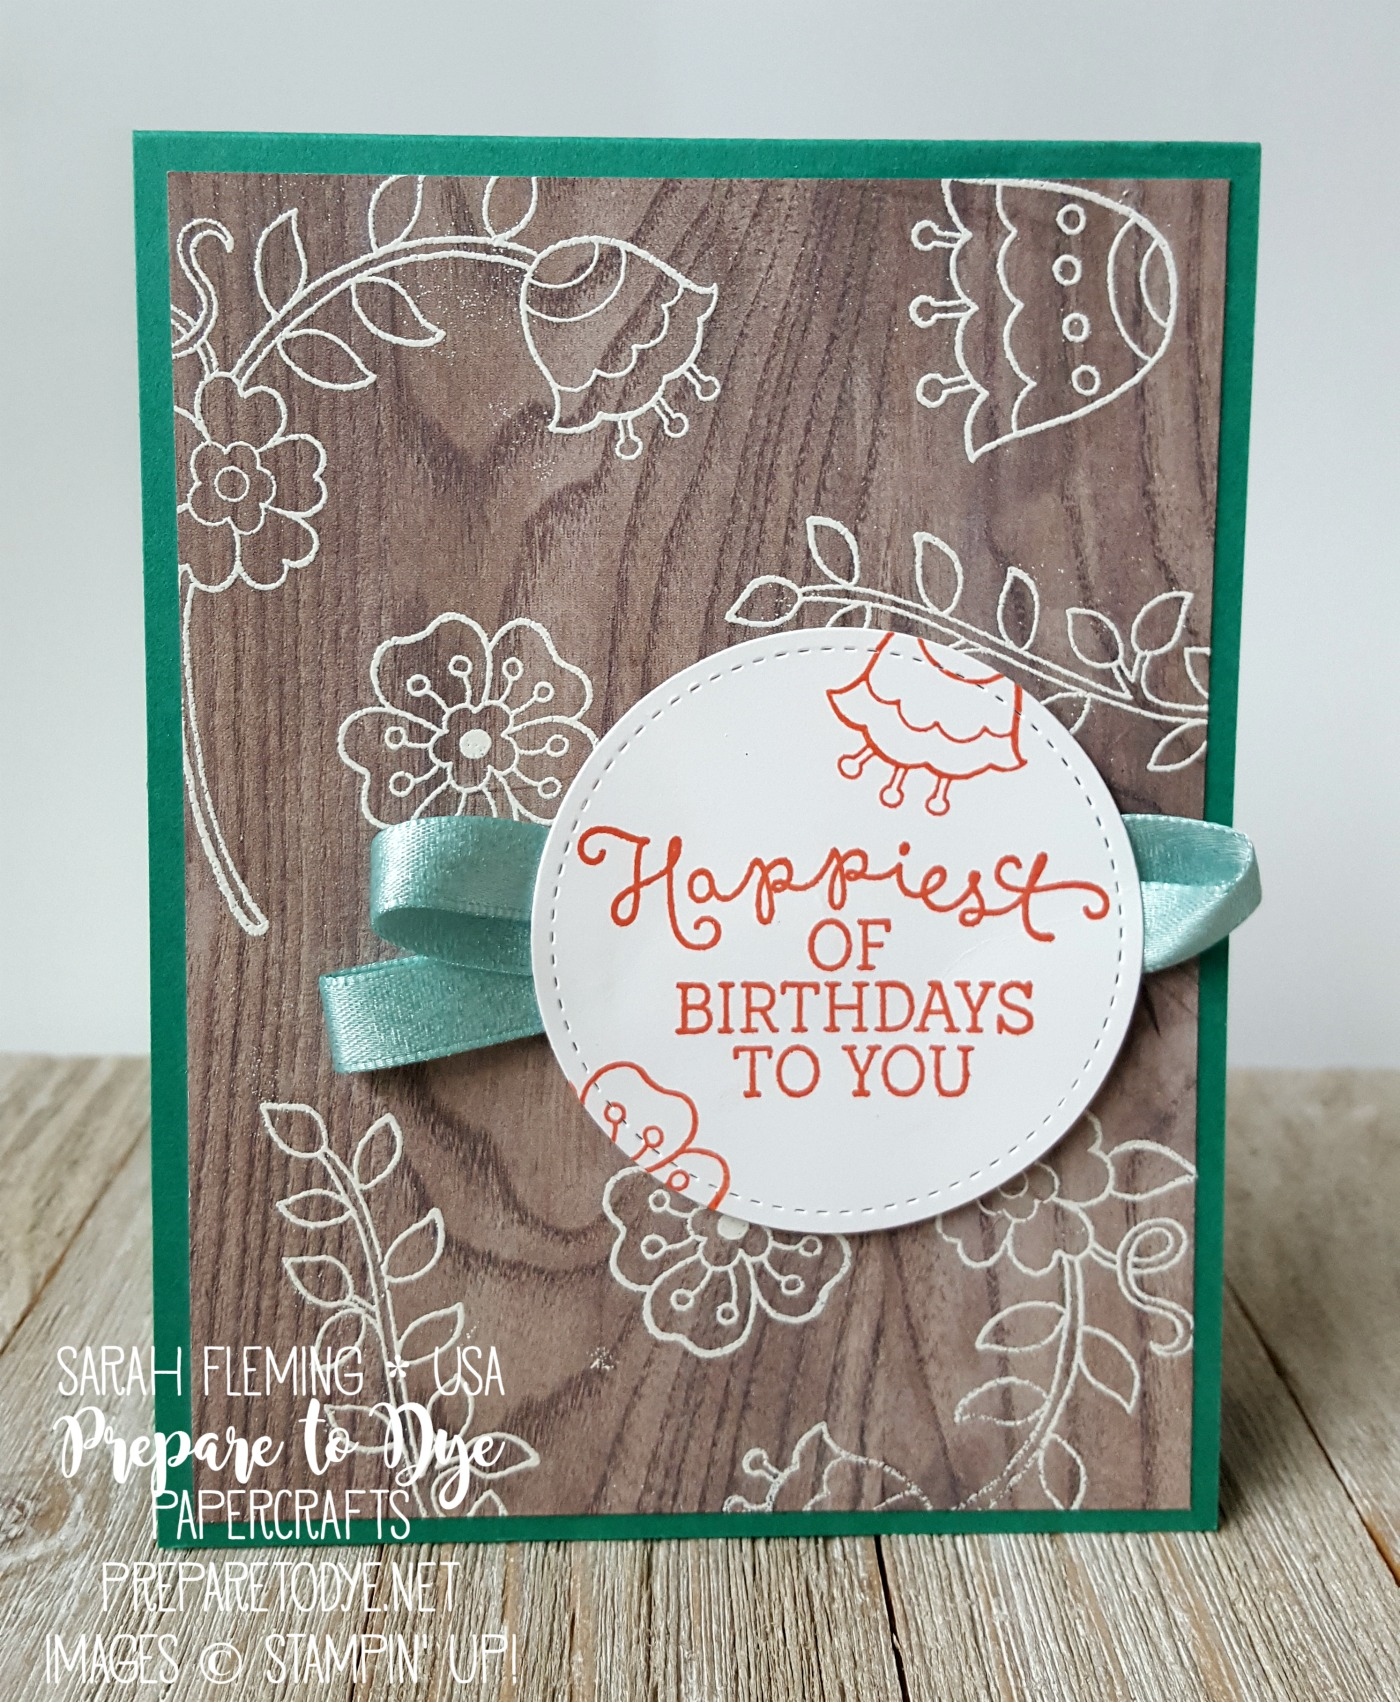 Stampin' Up! Wood Textures paper, Feathery Friends host stamp set, Birthday Blooms - handmade birthday card - Sarah Fleming - Prepare to Dye Papercrafts